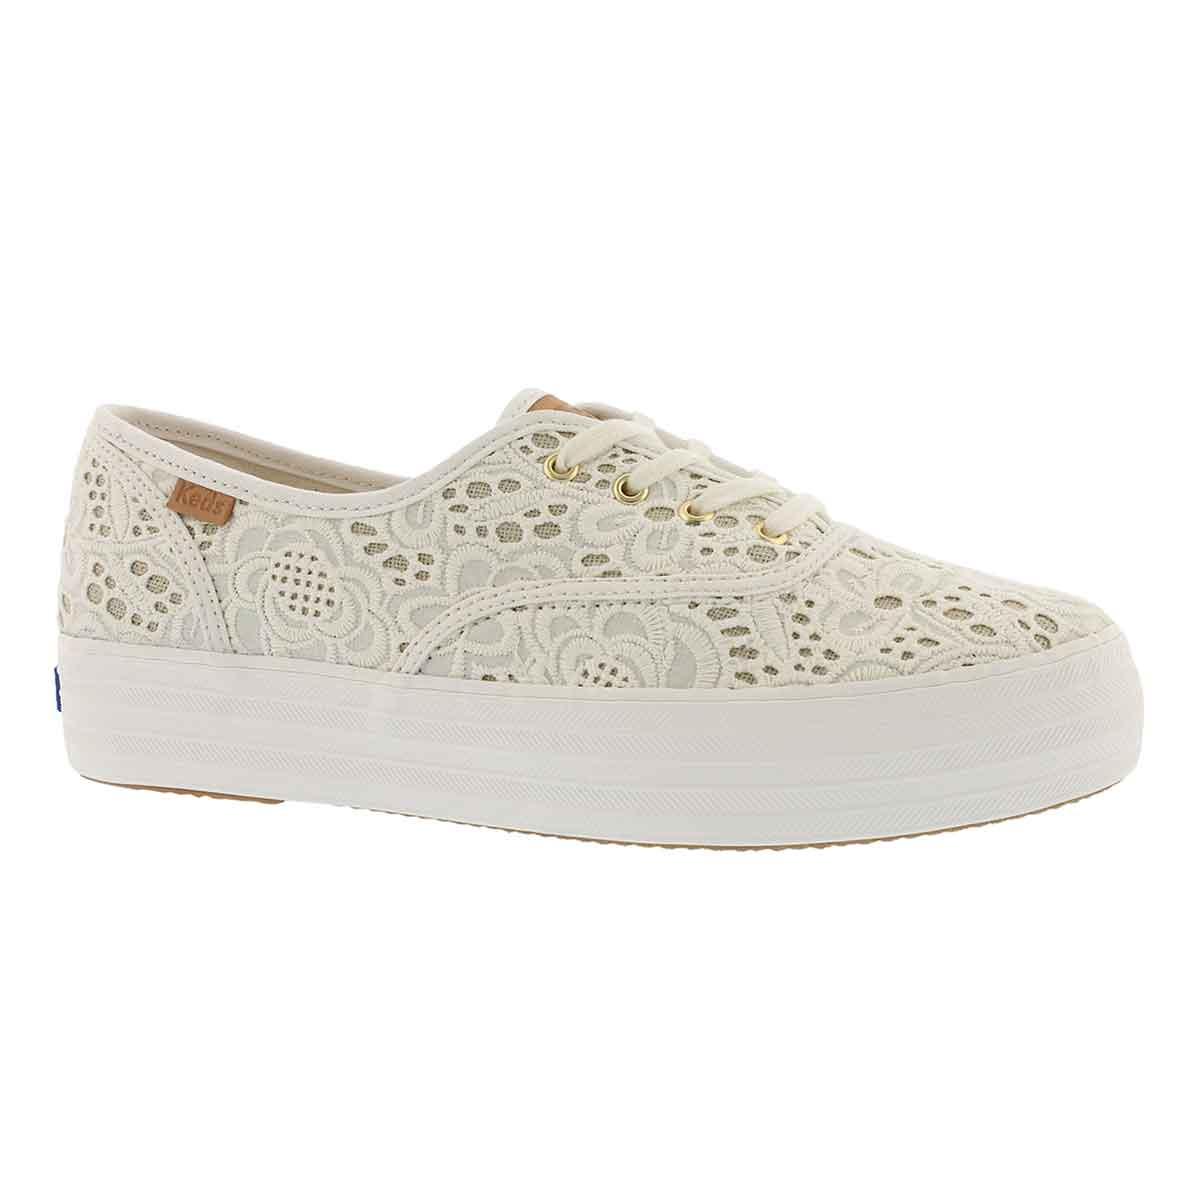 Keds Women's Keds Triple Embroidered Crochet Platform Sneaker jH6LE